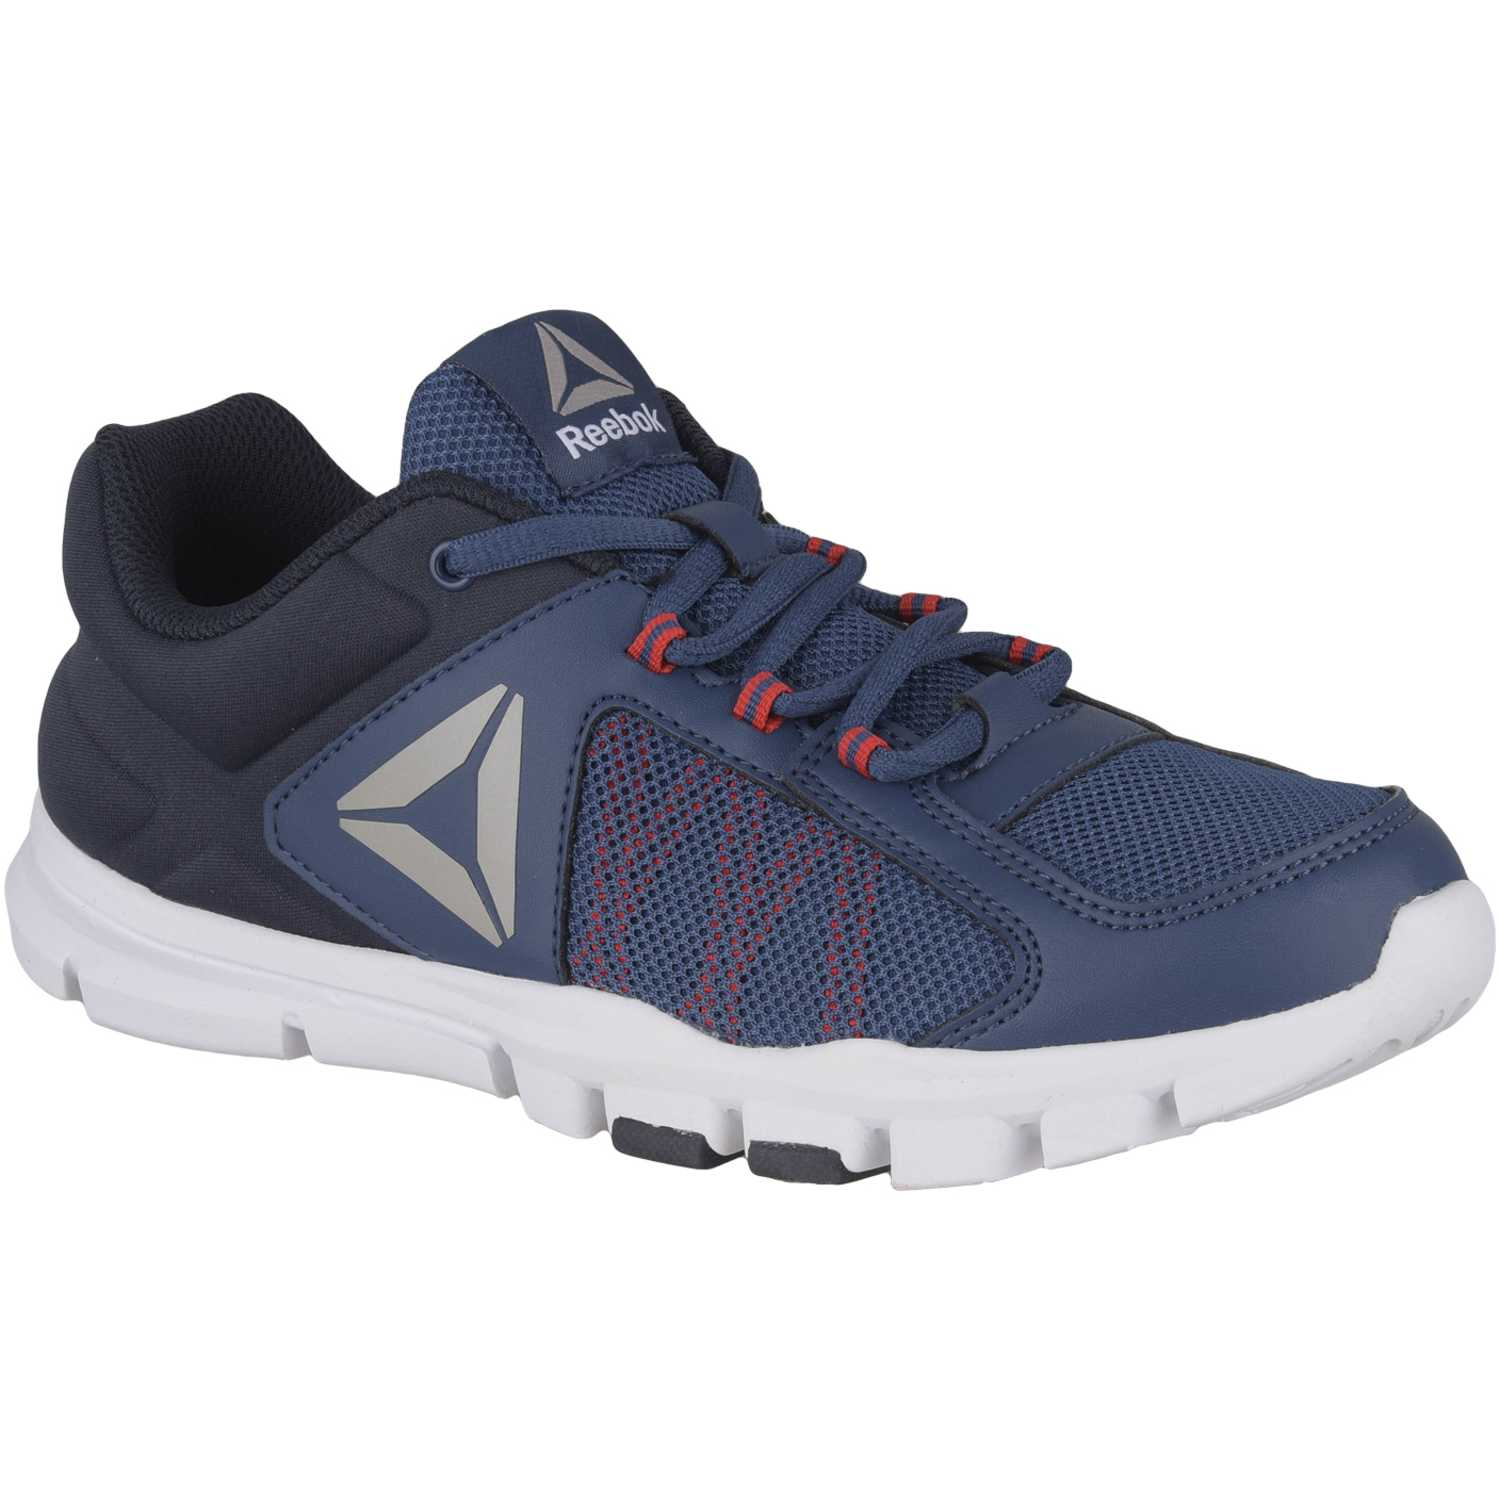 Reebok yourflex train 9.0 Azul / rojo Fitness y Cross-Training